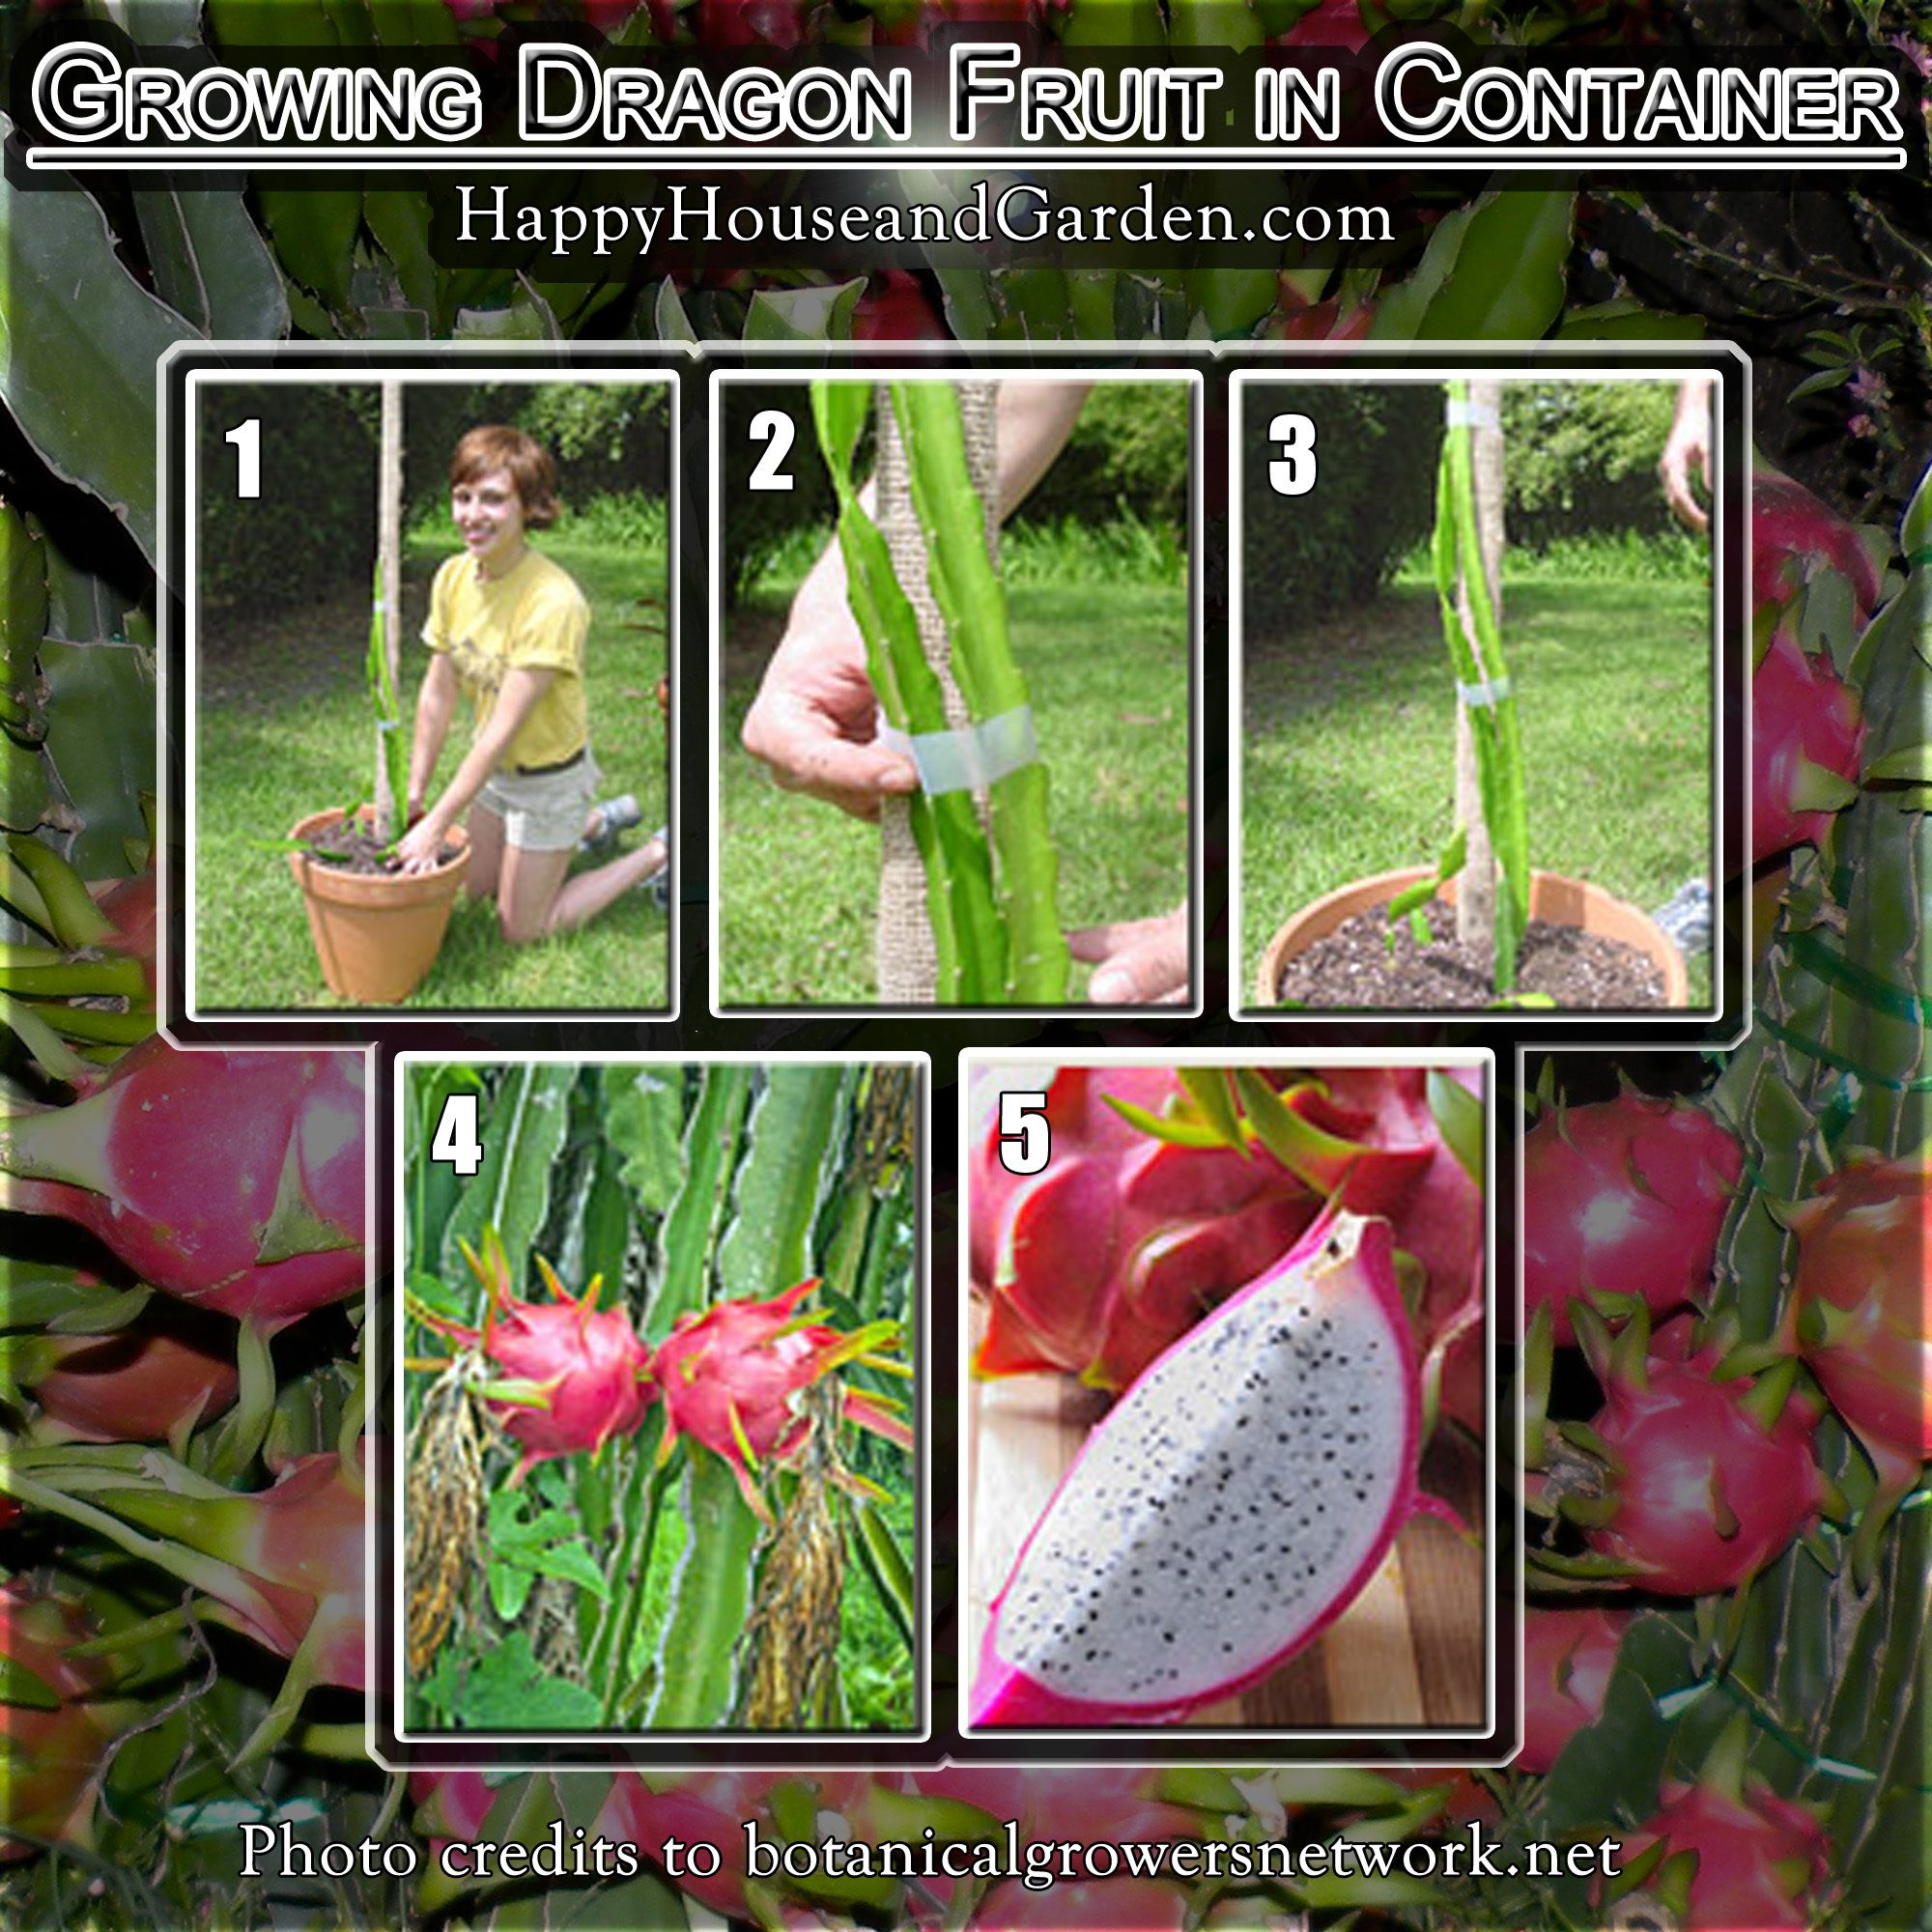 Growing Dragon Fruit Tree: How To Grow Dragon Fruit In Container. Click The Image Or